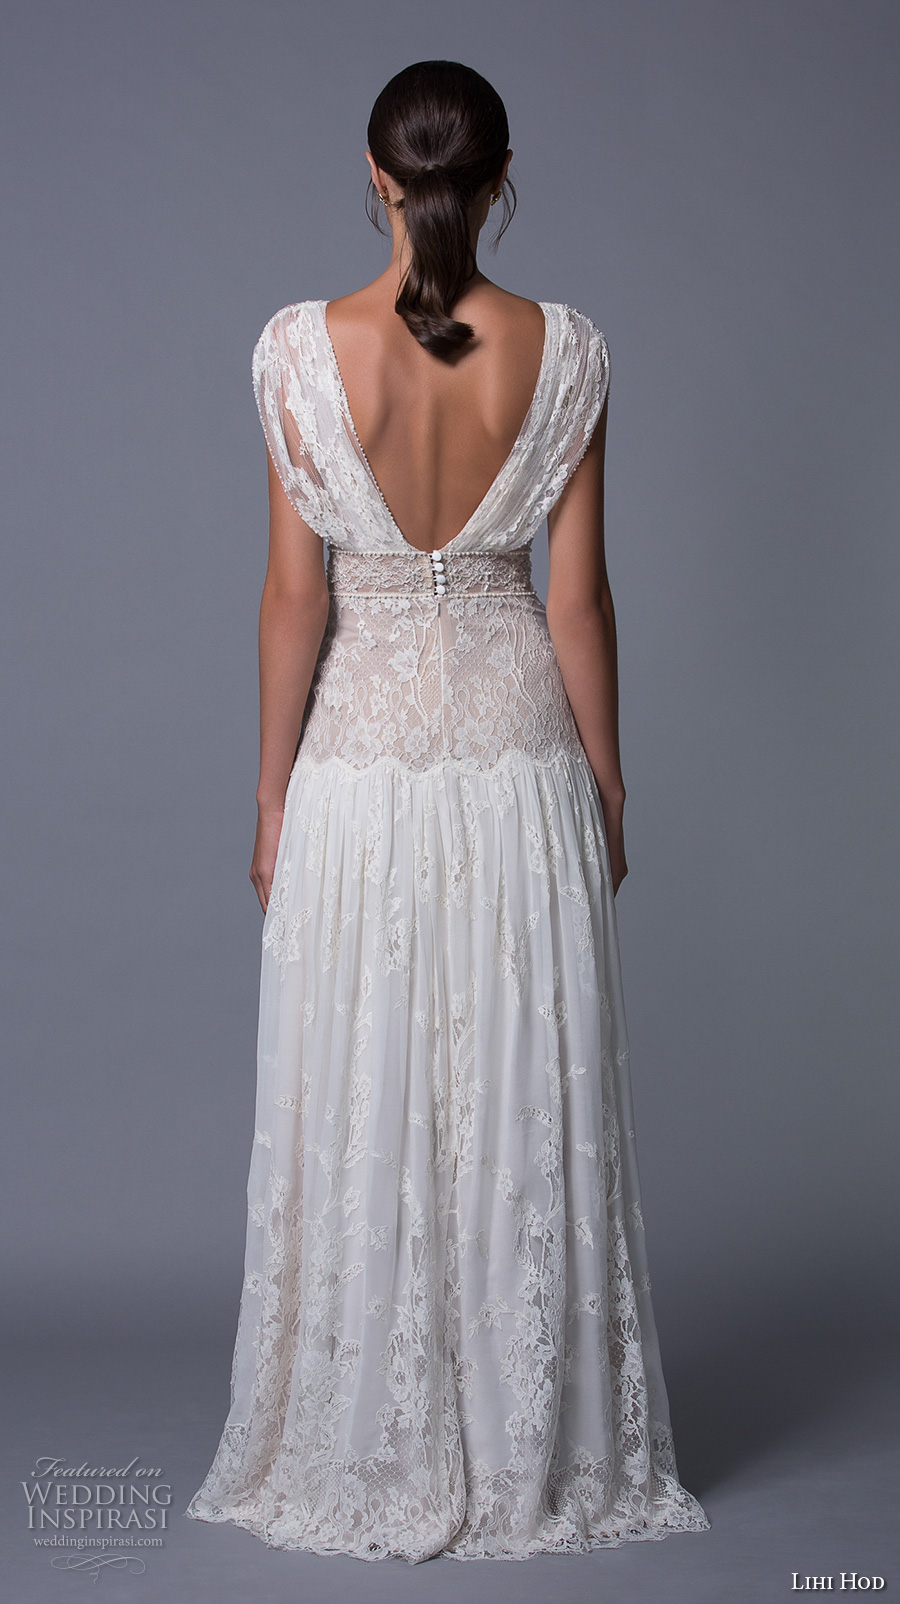 lihi hod 2017 bridal cap sleeves v back full embellishment lace vintage bohemian modified a line wedding dress v low back sweep train (alona) bv